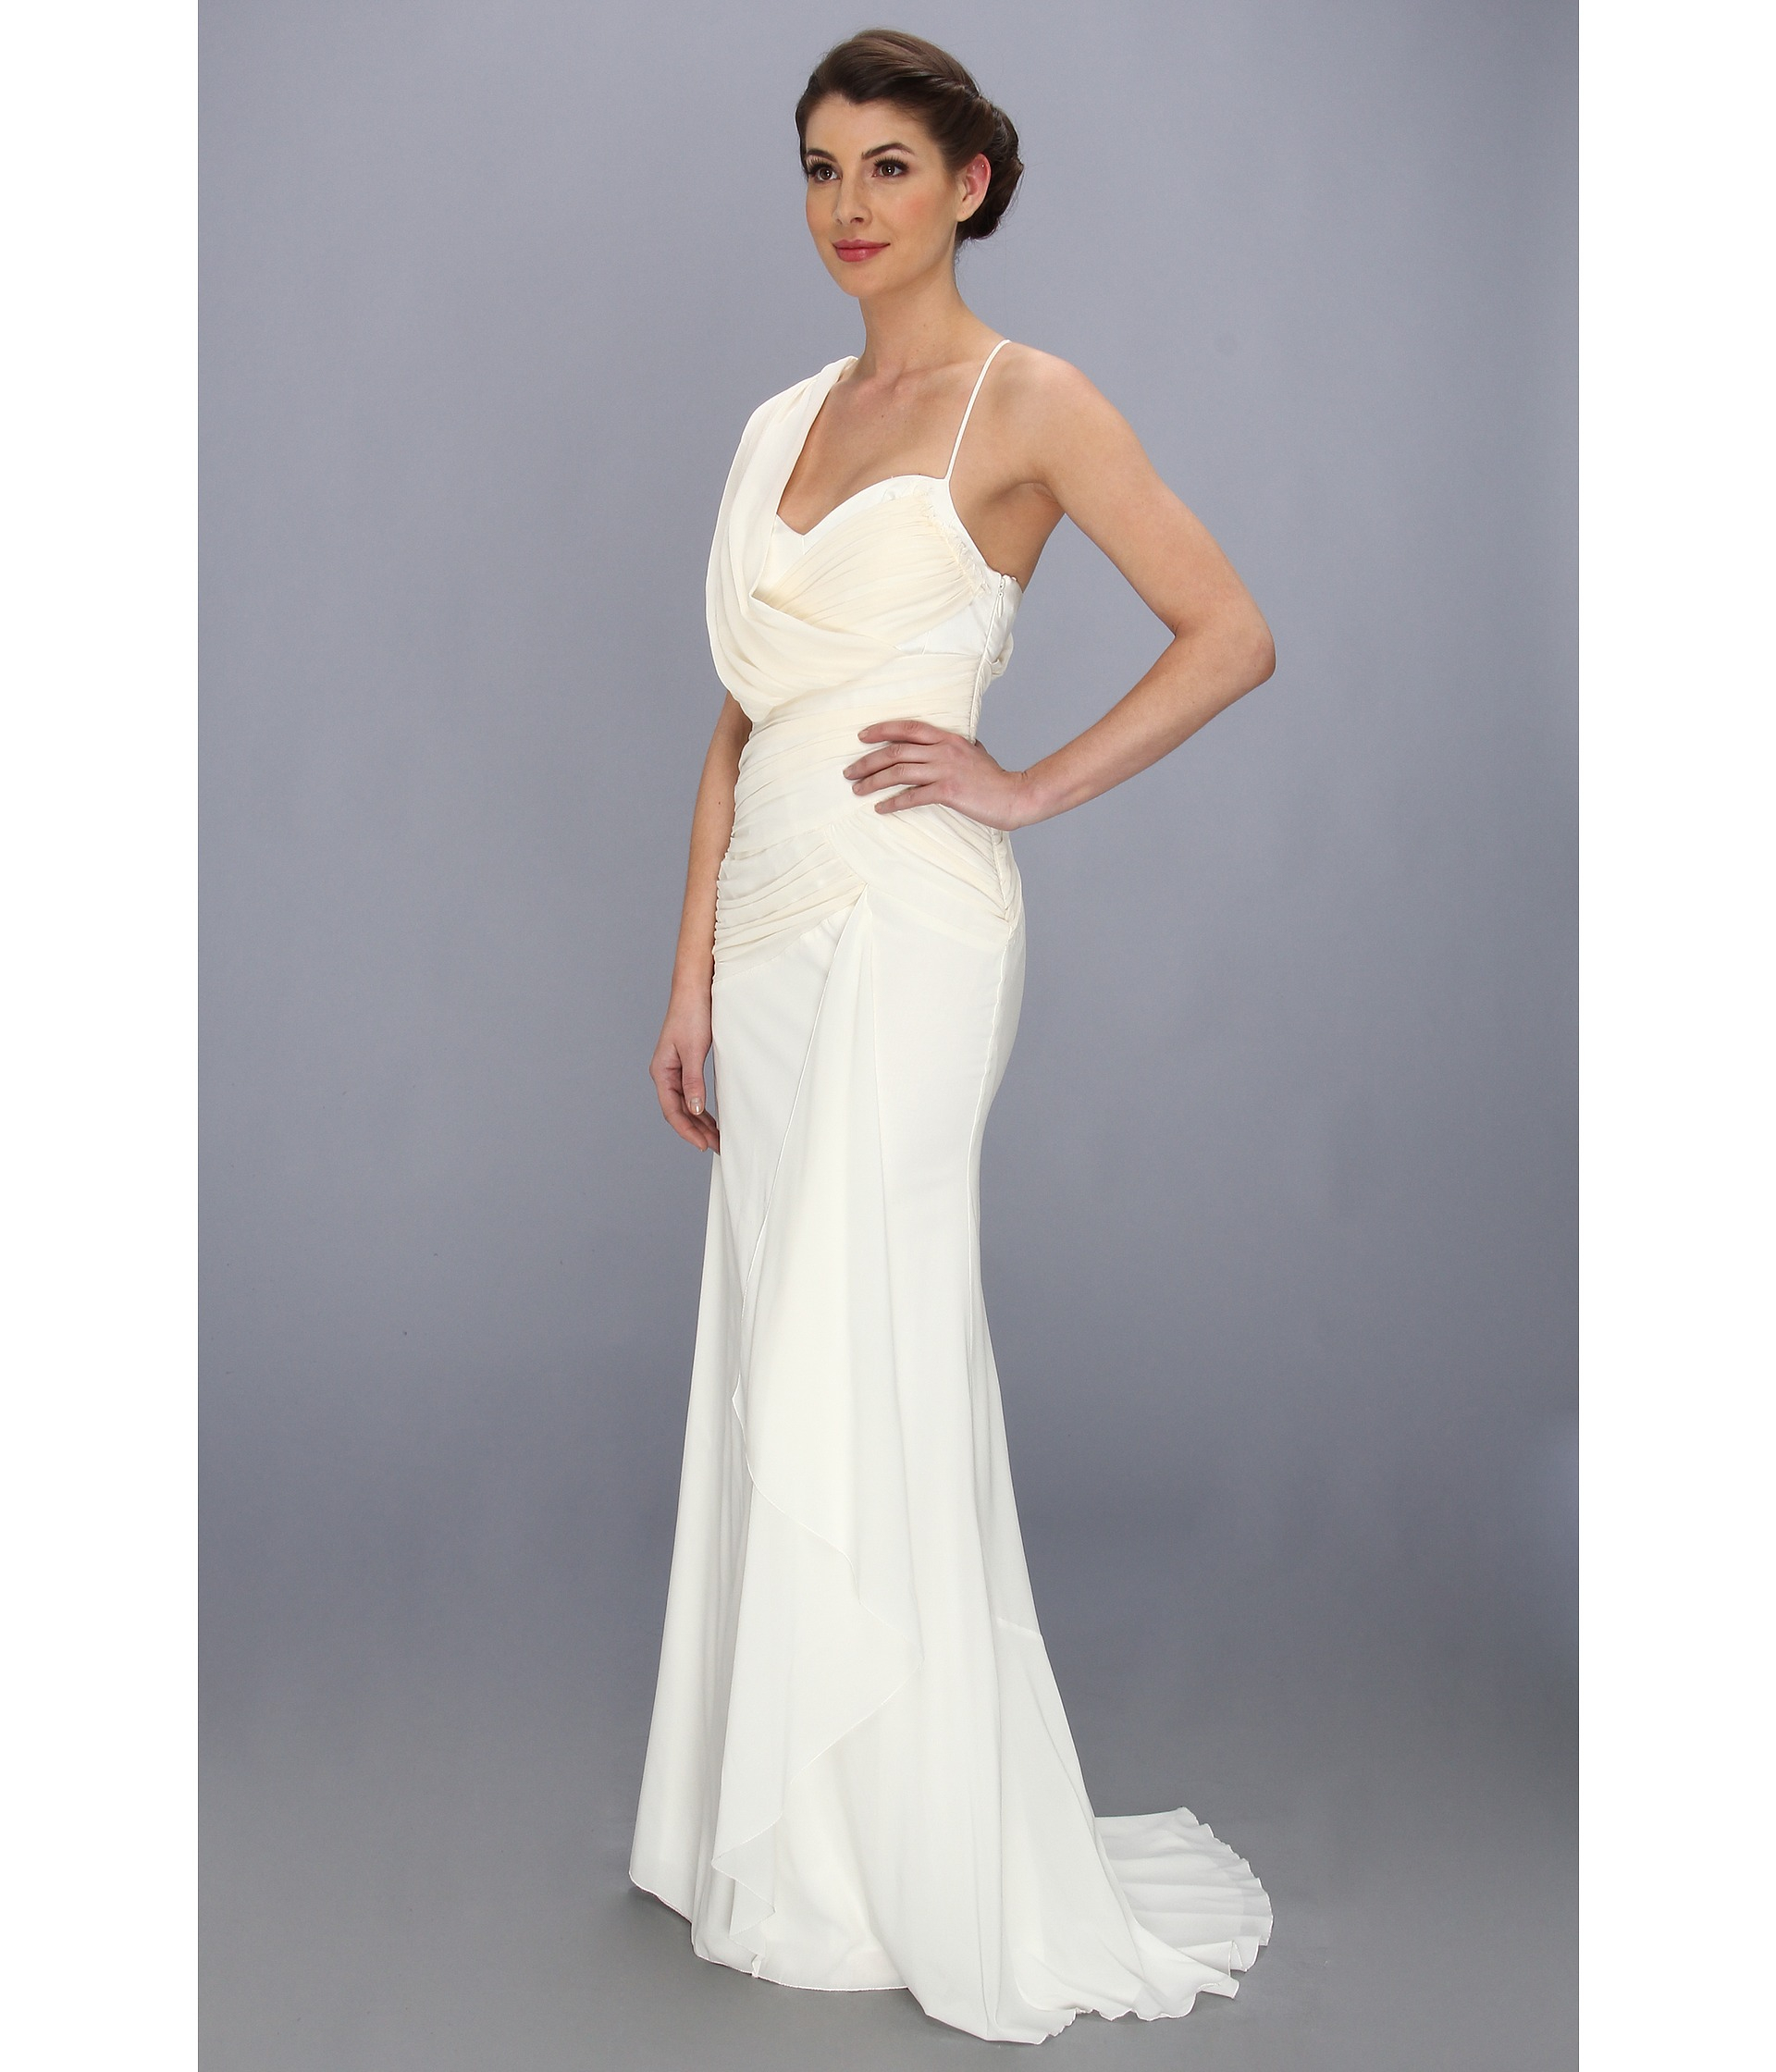 Lyst - Nicole Miller Georgette Draped Bridal Gown in White